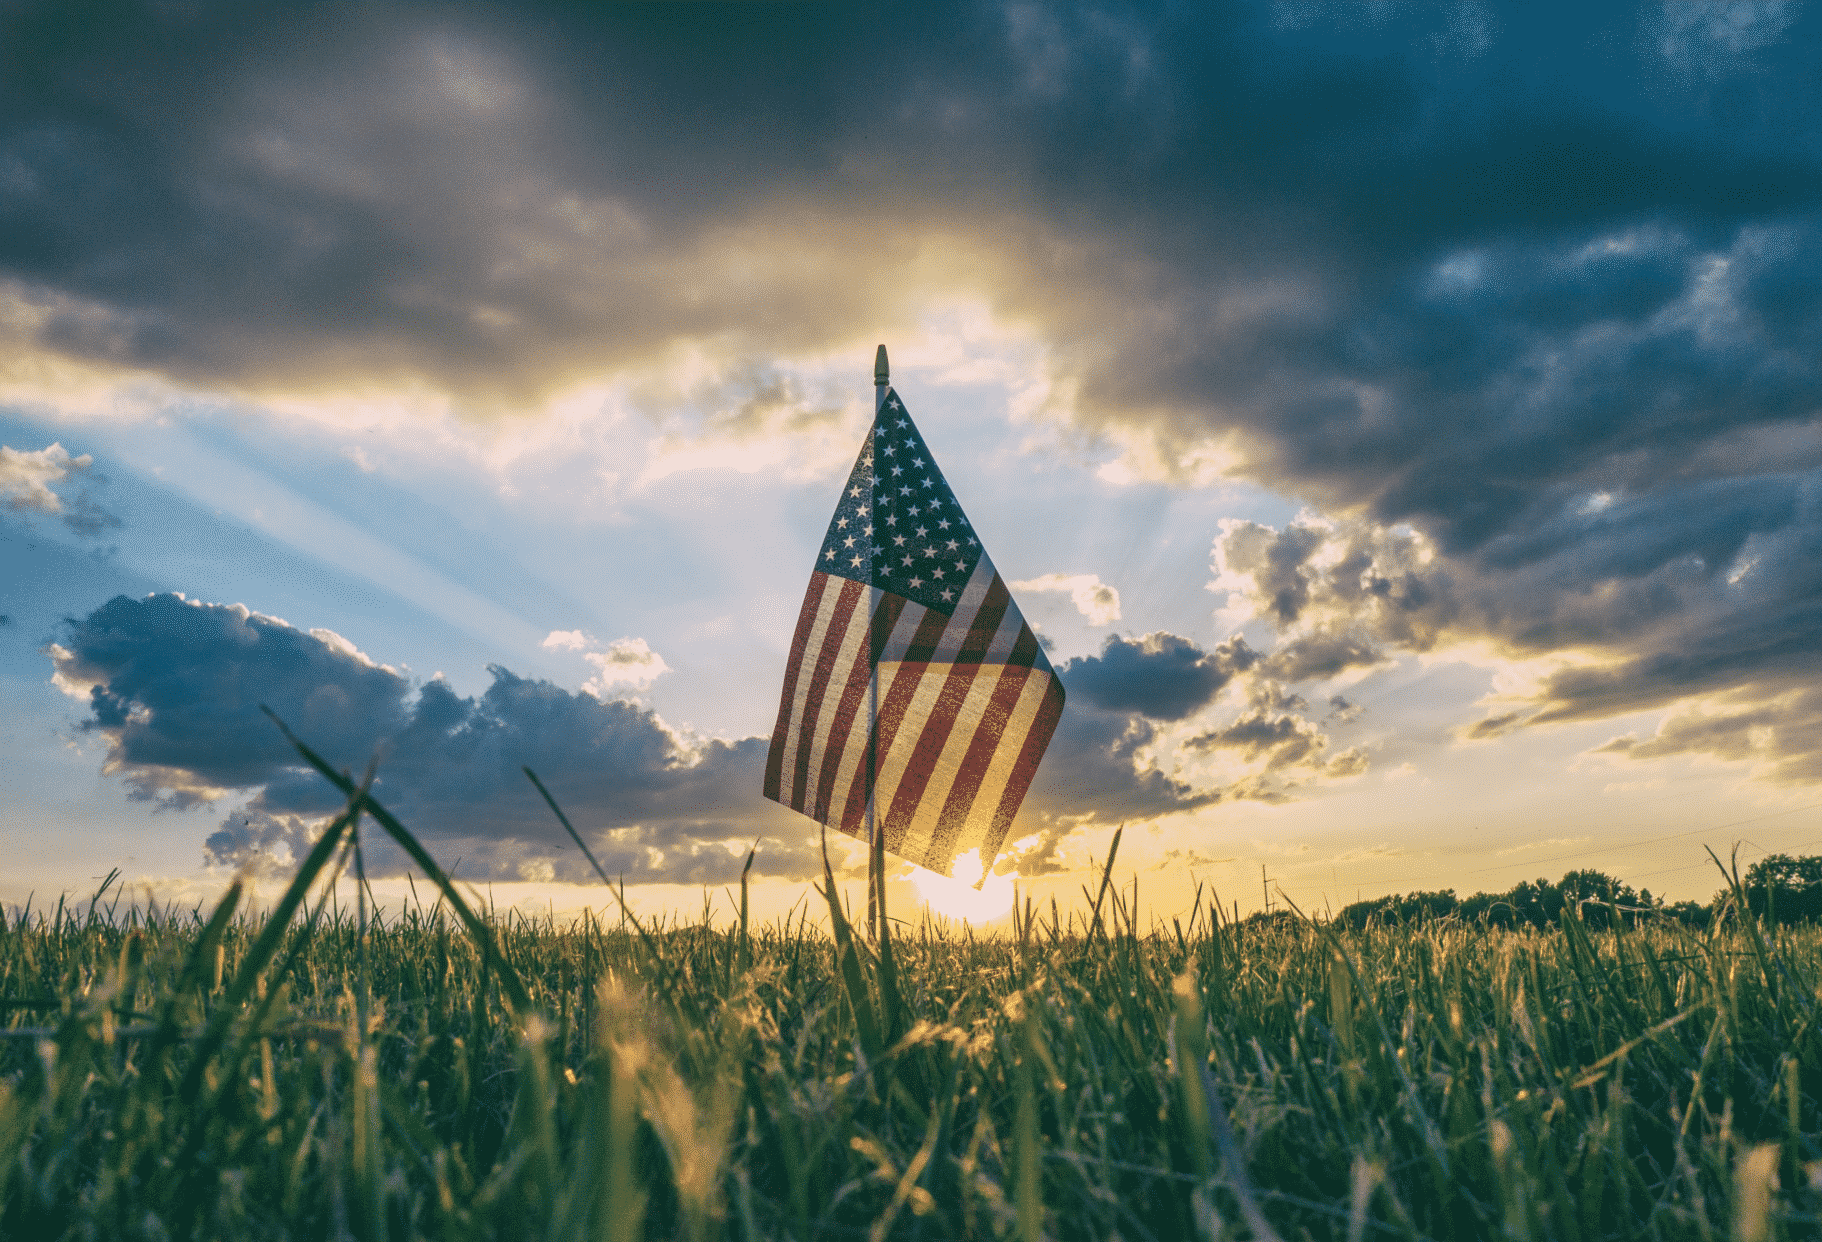 An American flag atop a pole in a green grassy field with the sun rising behind it.